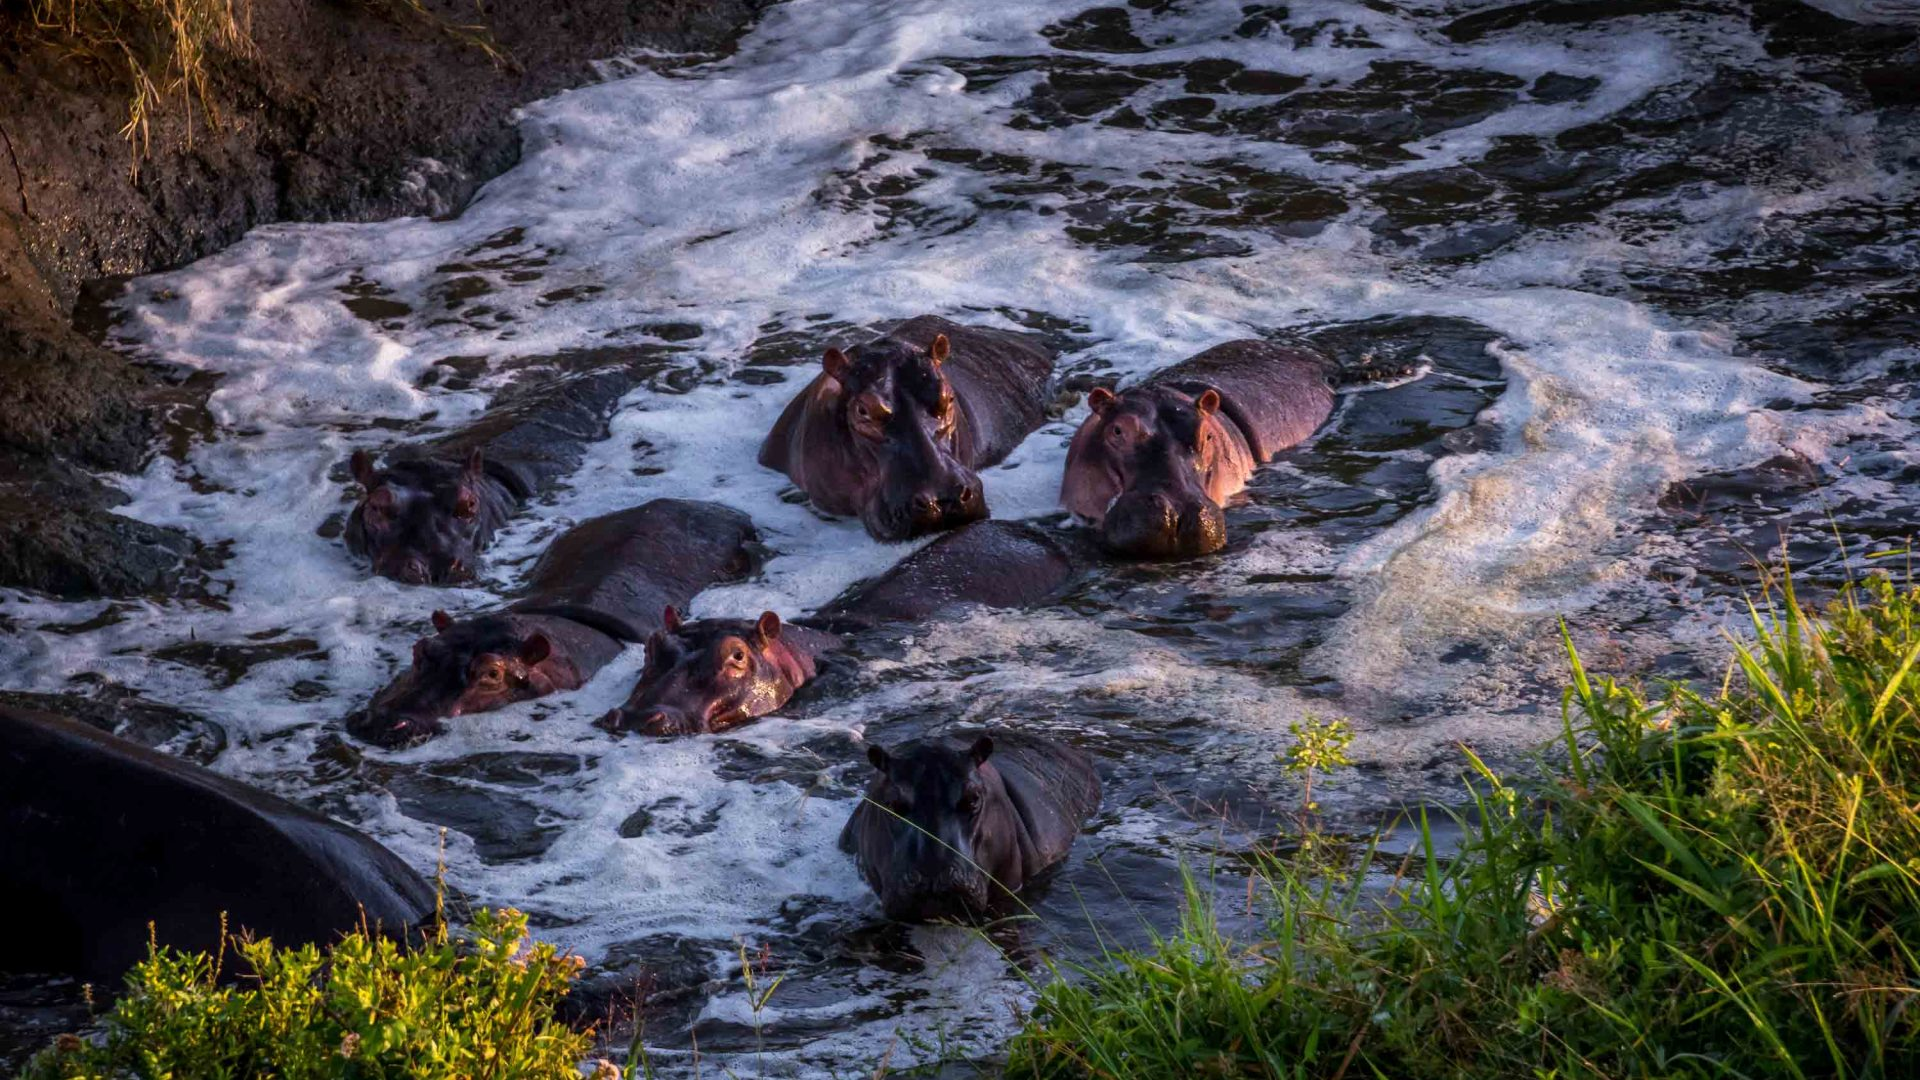 Hippos in the Serengeti, Tanzania, as seen from a hot air balloon.